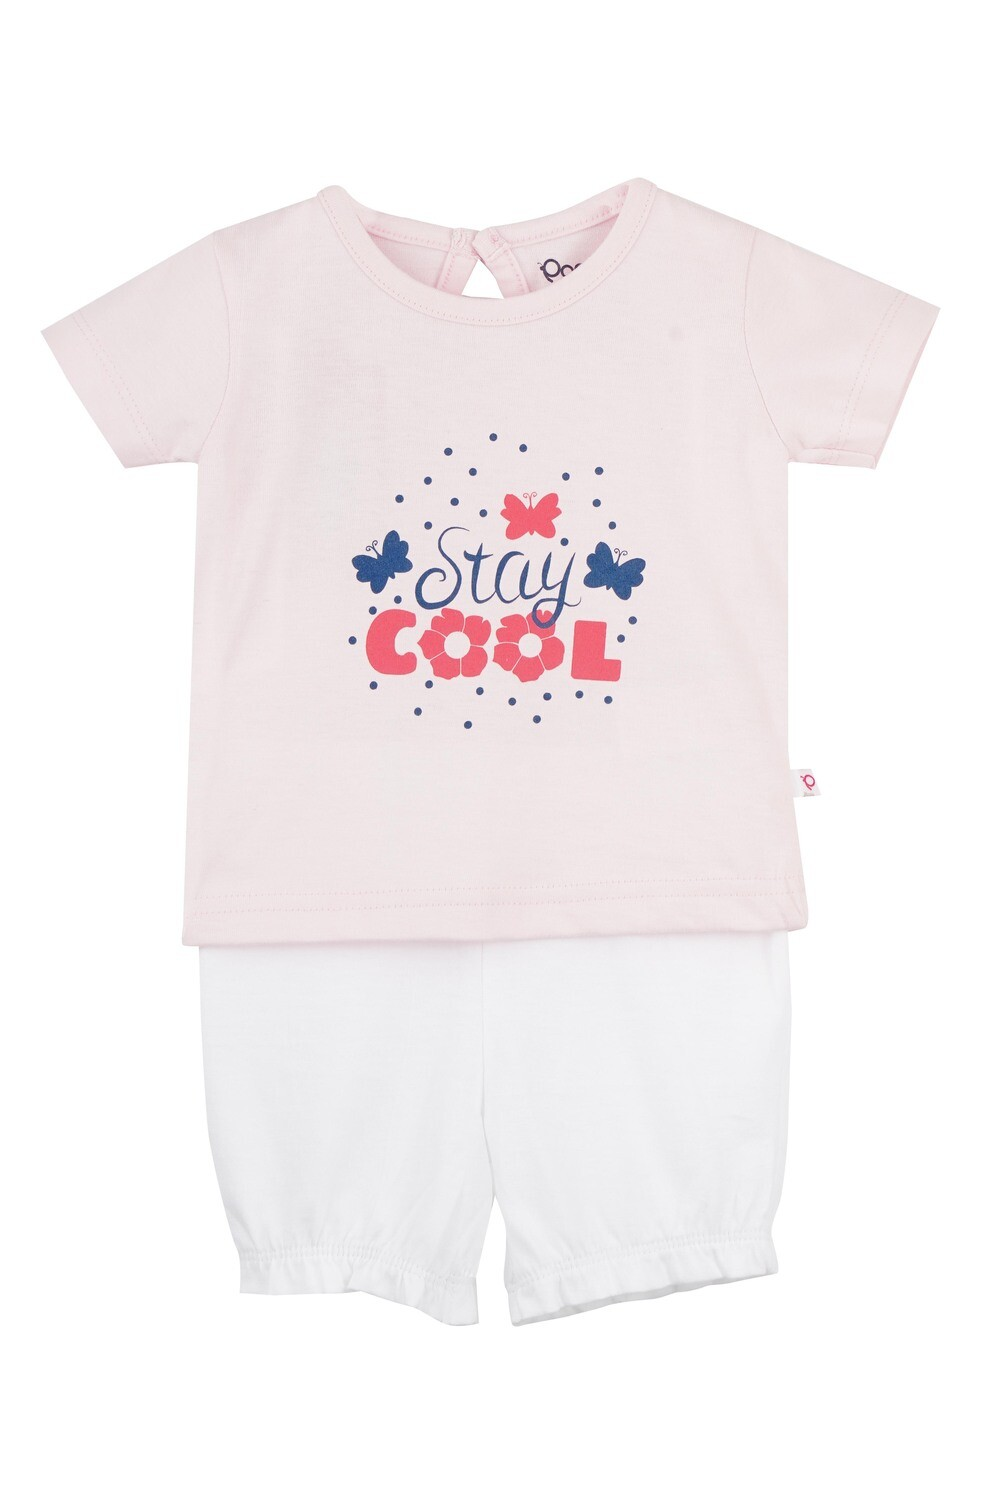 STRAWBERRY Fairy Tale Half sleeve Top and Panties for Baby Girls